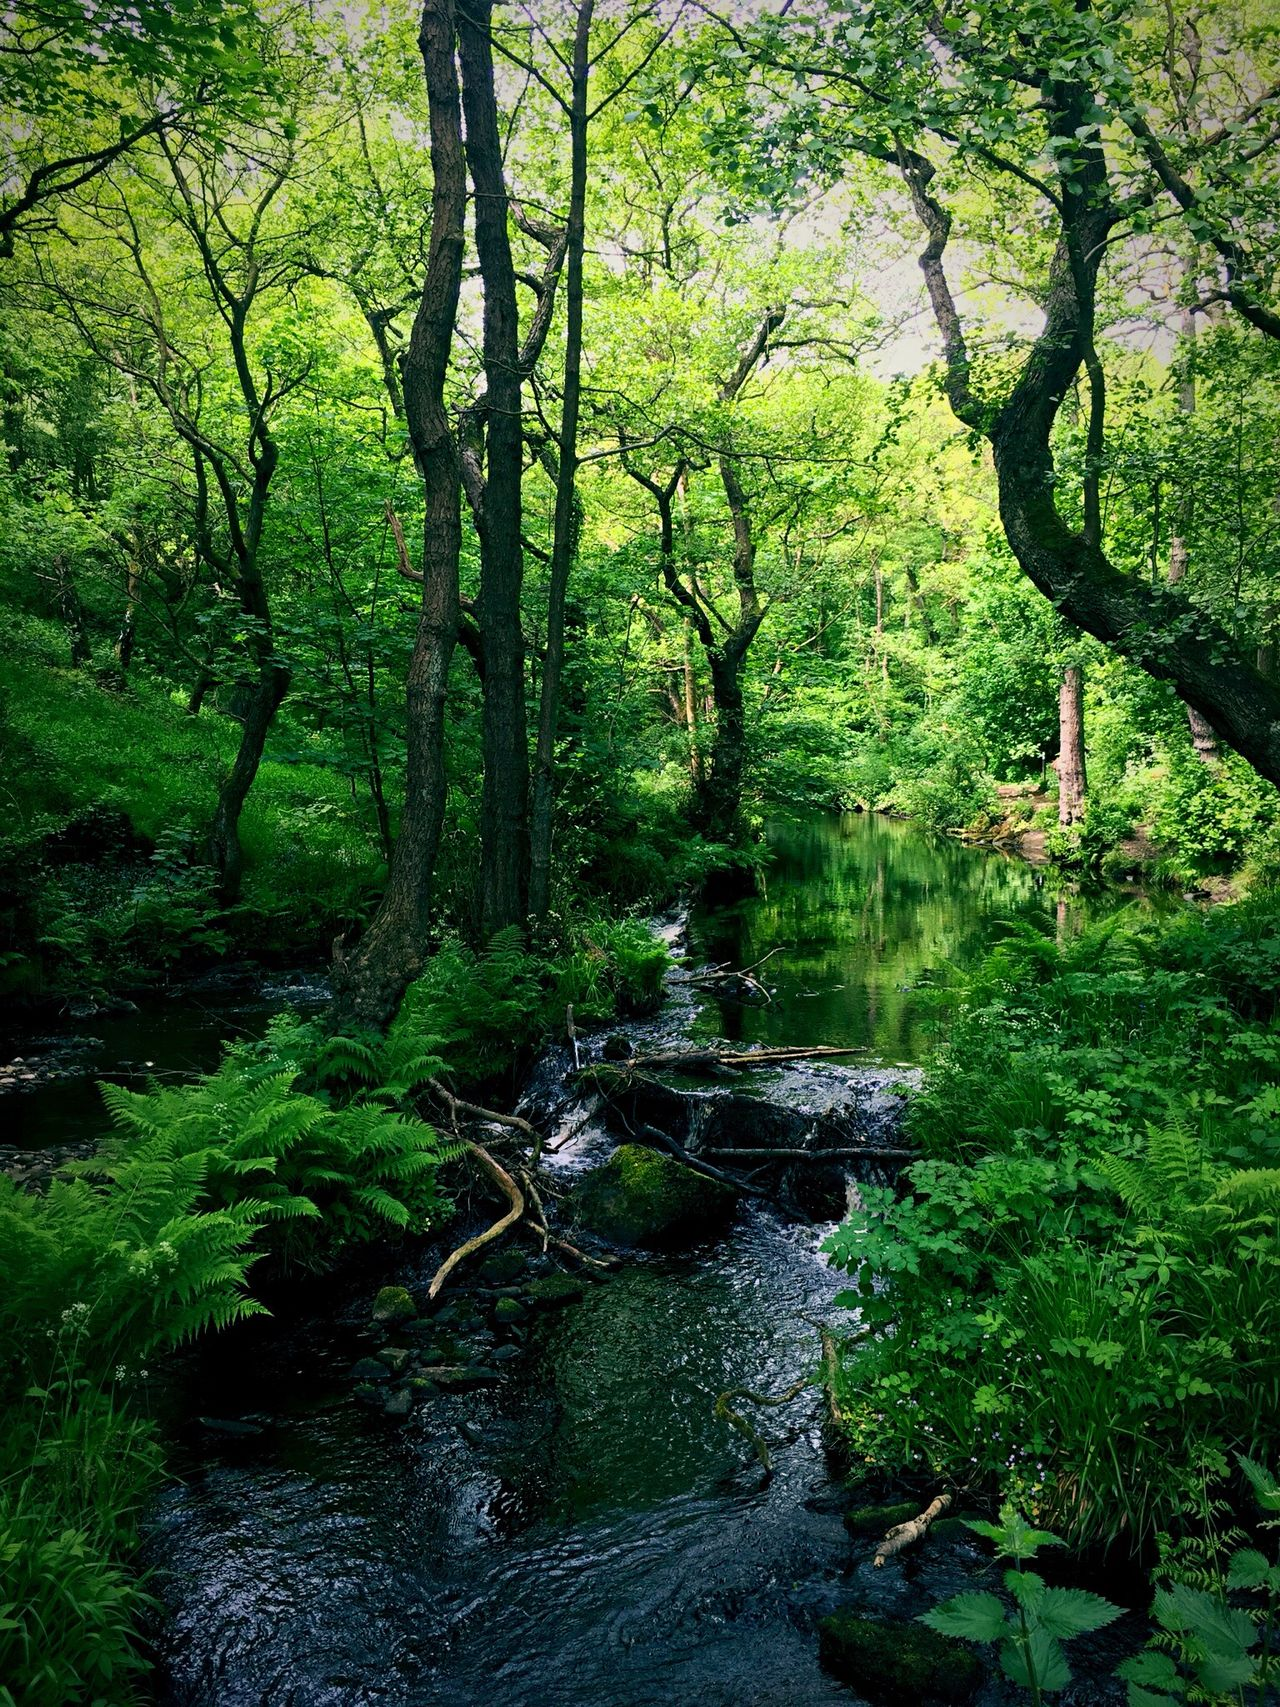 How green is my valley ? Tree Nature Forest Tranquil Scene Beauty In Nature Lush Foliage Tranquility Scenics Water Outdoors Idyllic Green Color Landscape Vacations River Travel Destinations Moss No People Outdoor Pursuit Deciduous Tree Rivelin Valley